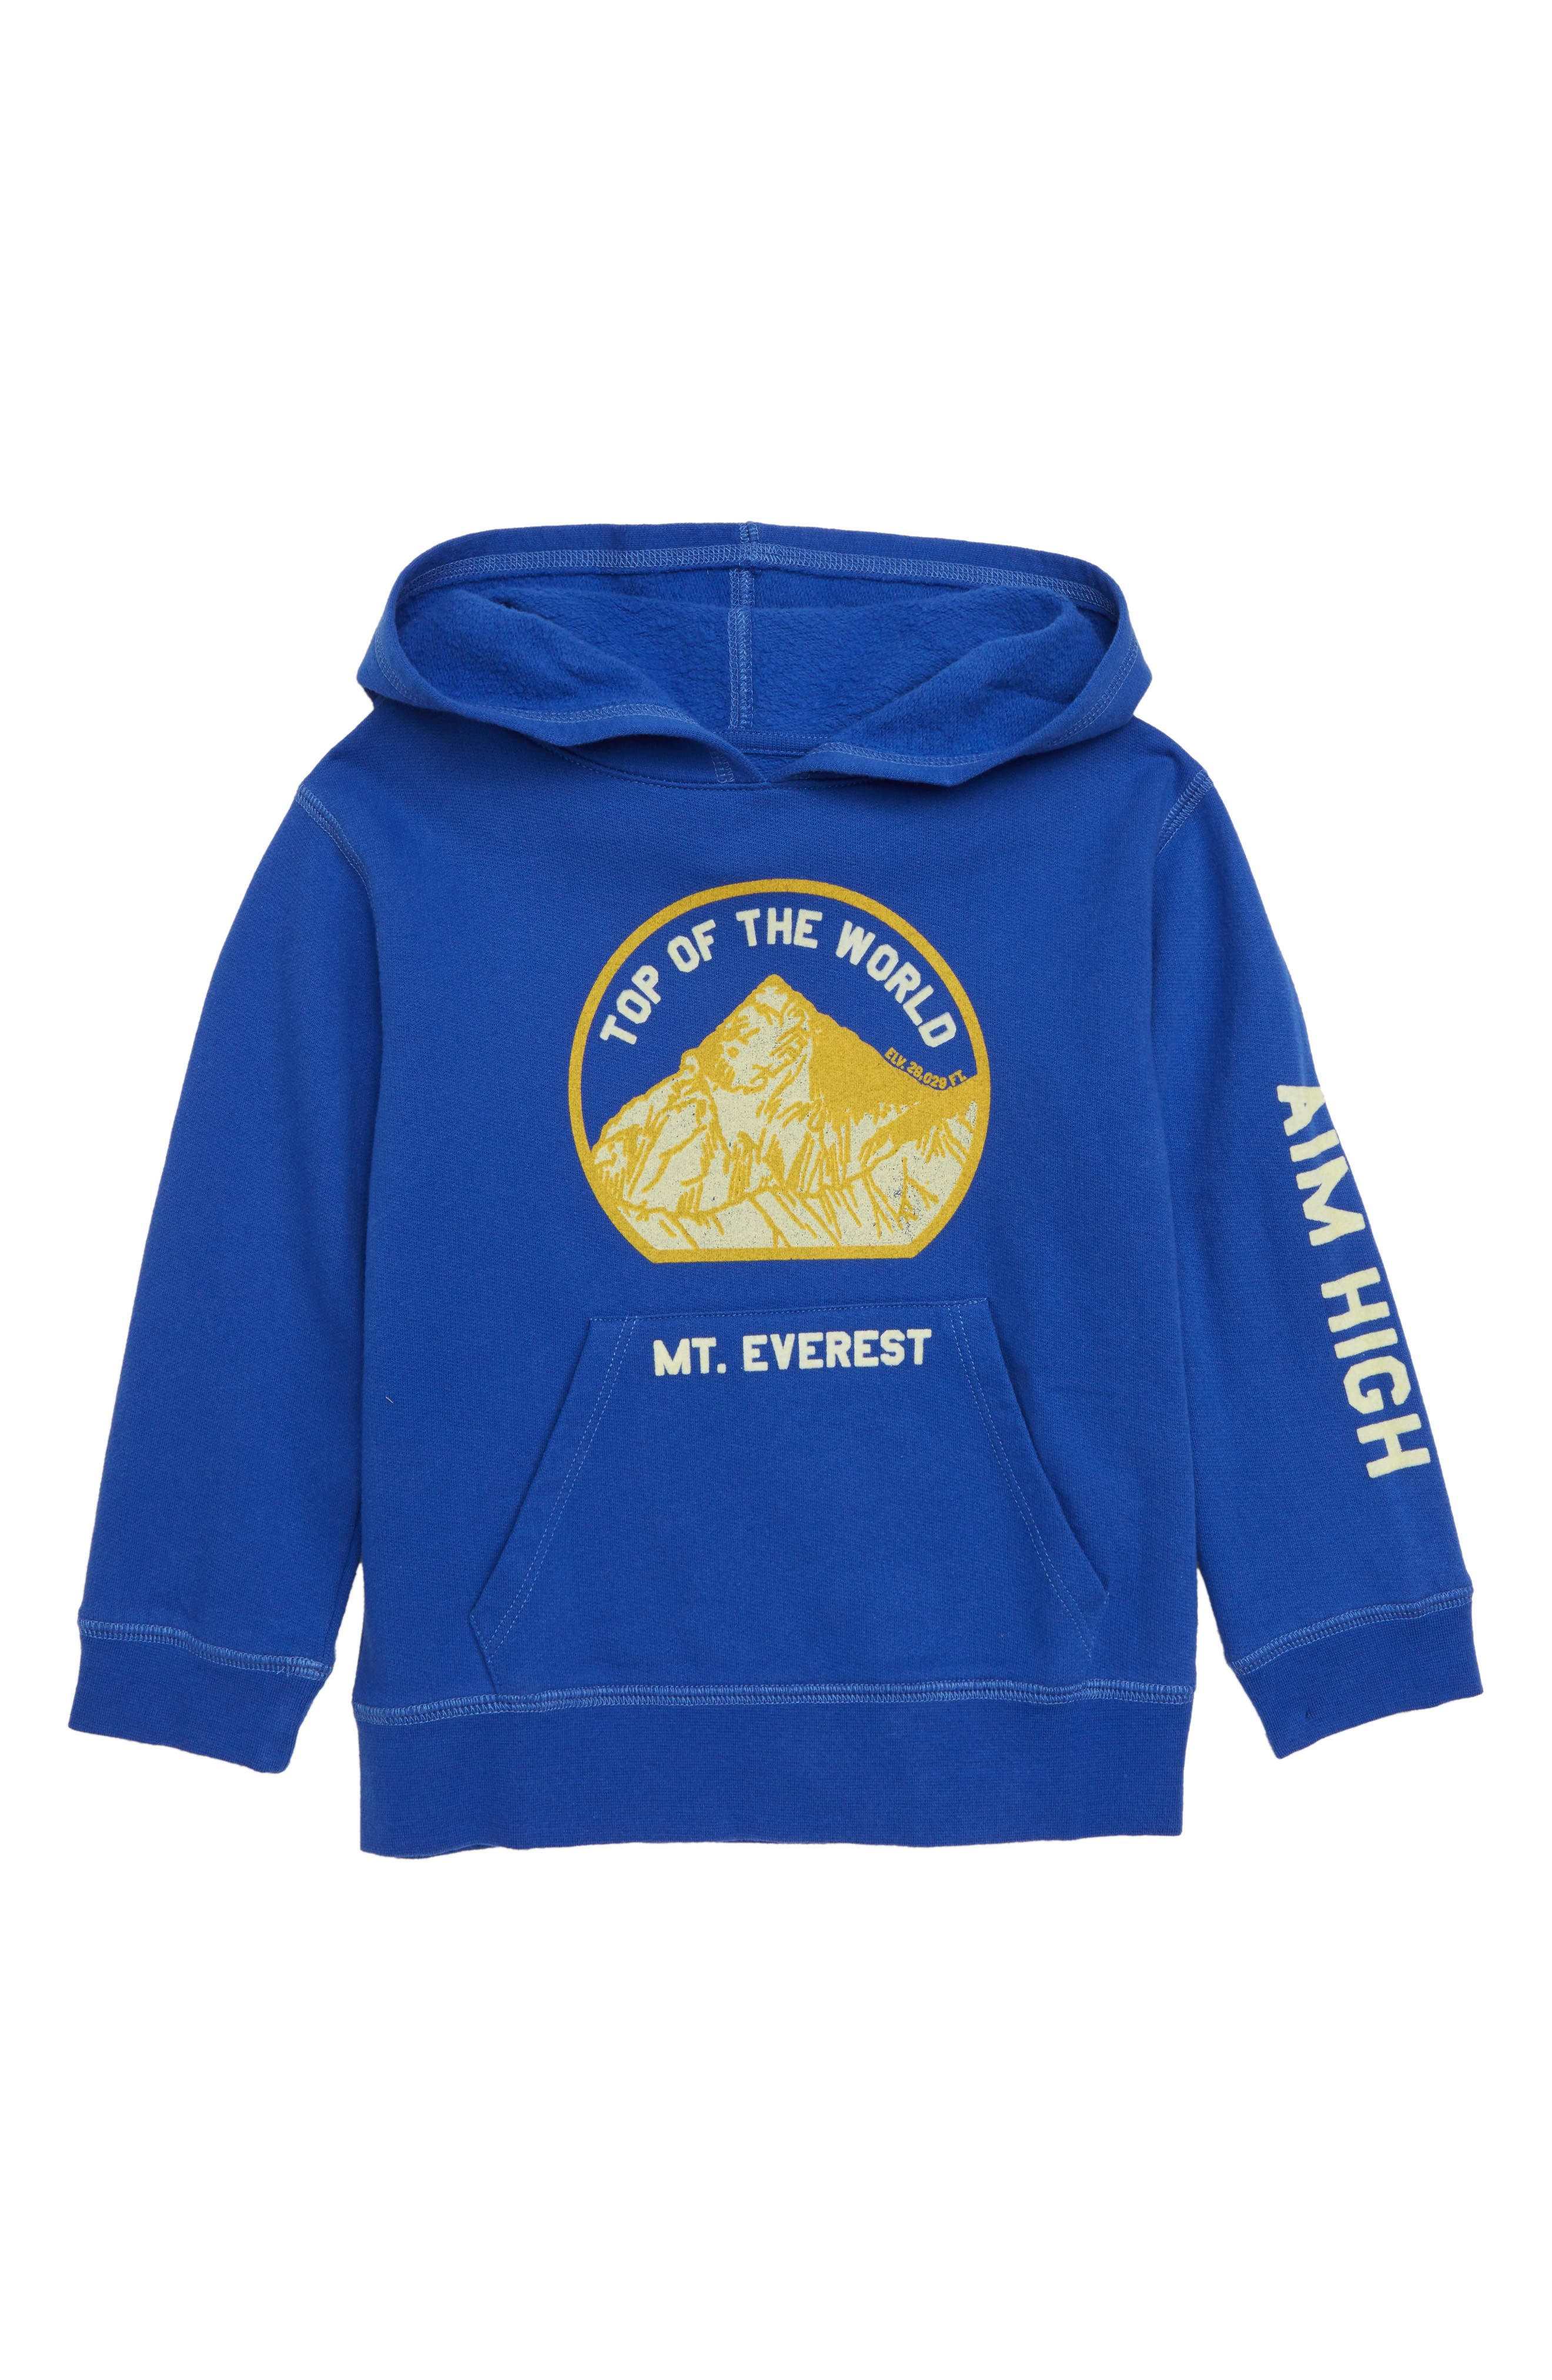 Aim High Hoodie,                         Main,                         color, BLUE